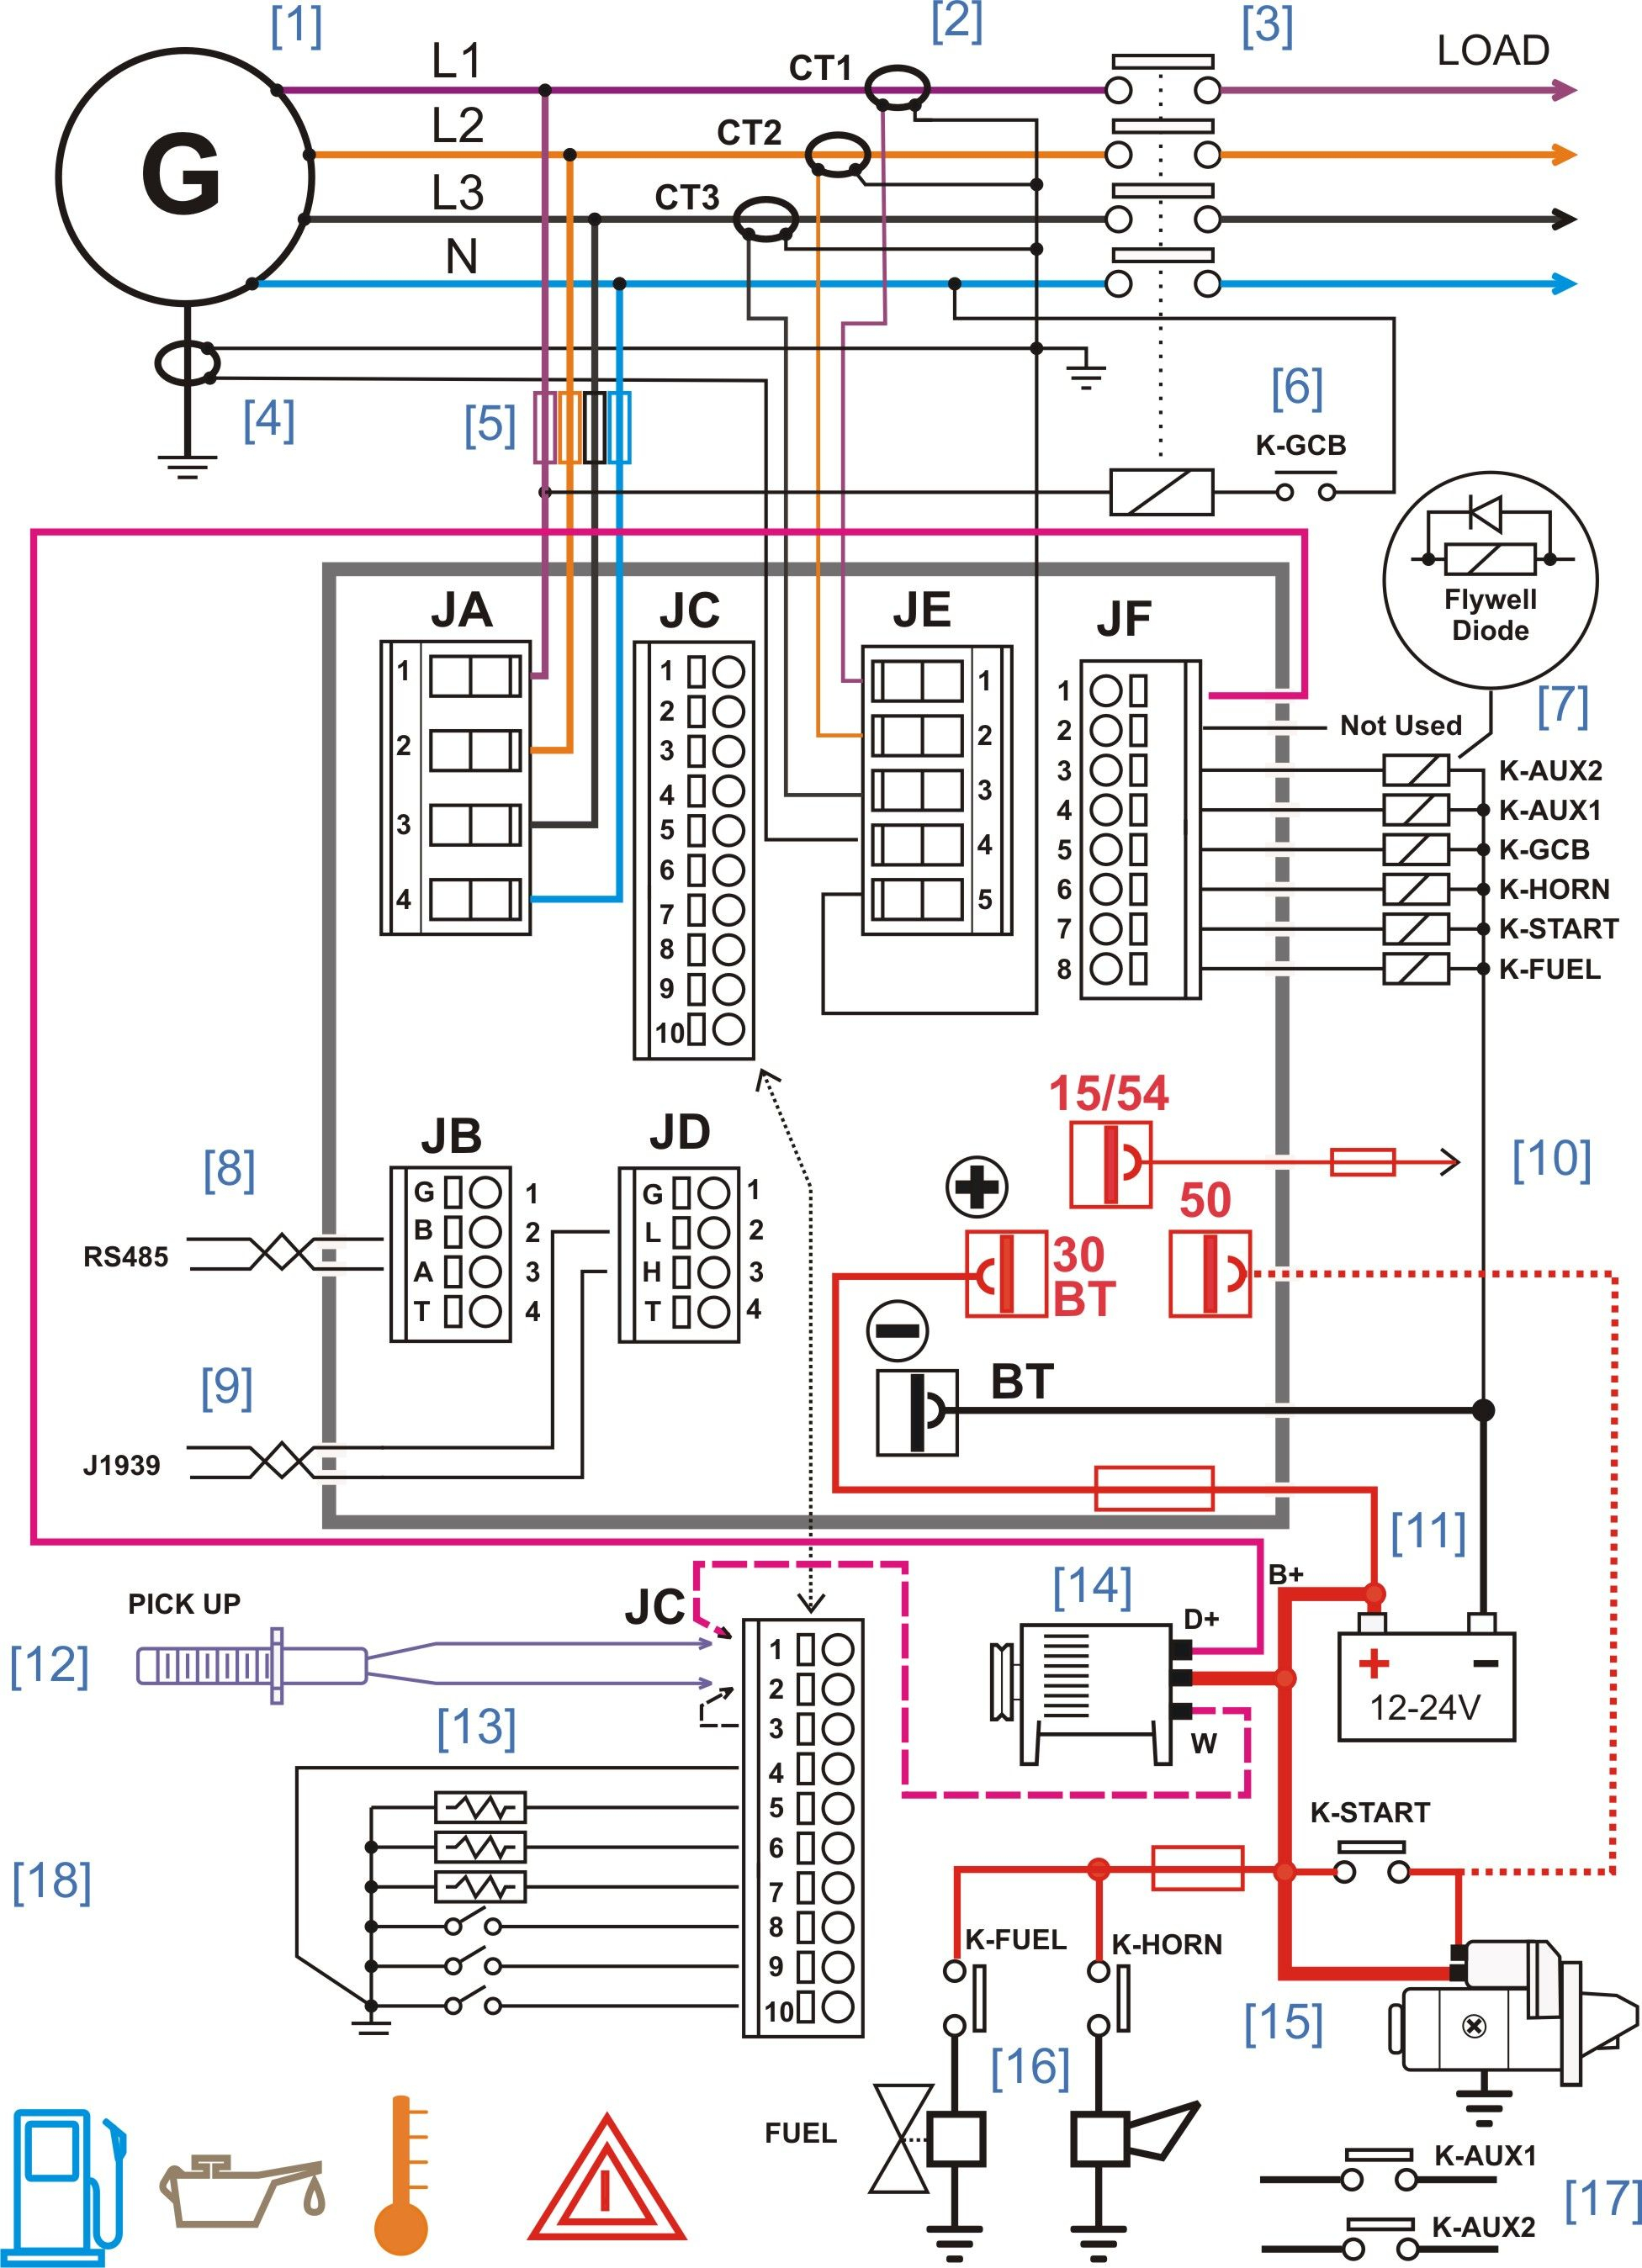 Electrical Control Panel Wiring Diagram Pdf - Diesel Generator Control Panel Wiring Diagram 5j